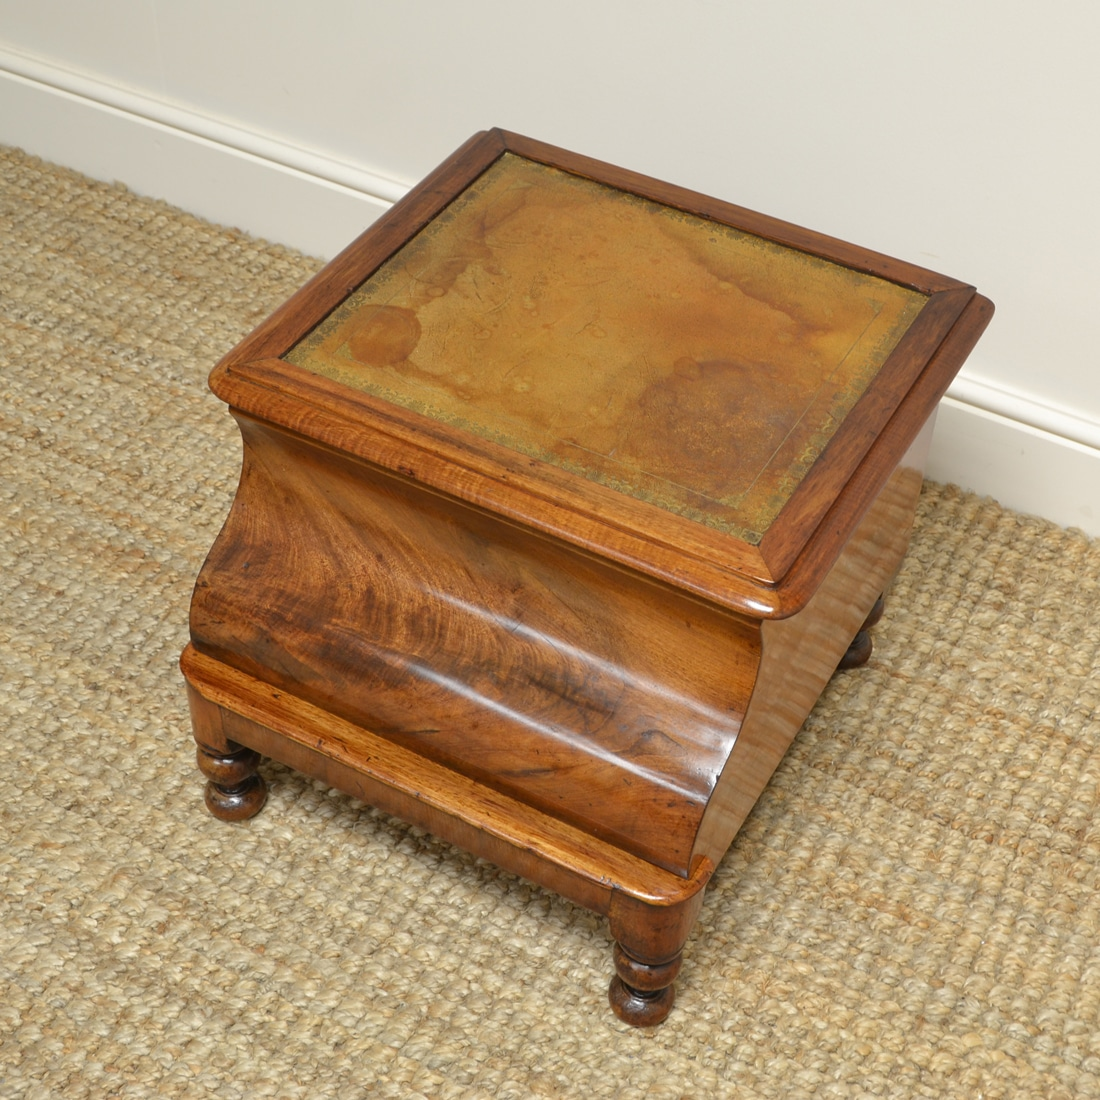 Regency Warm Mahogany Country House Antique Bed Steps Commode